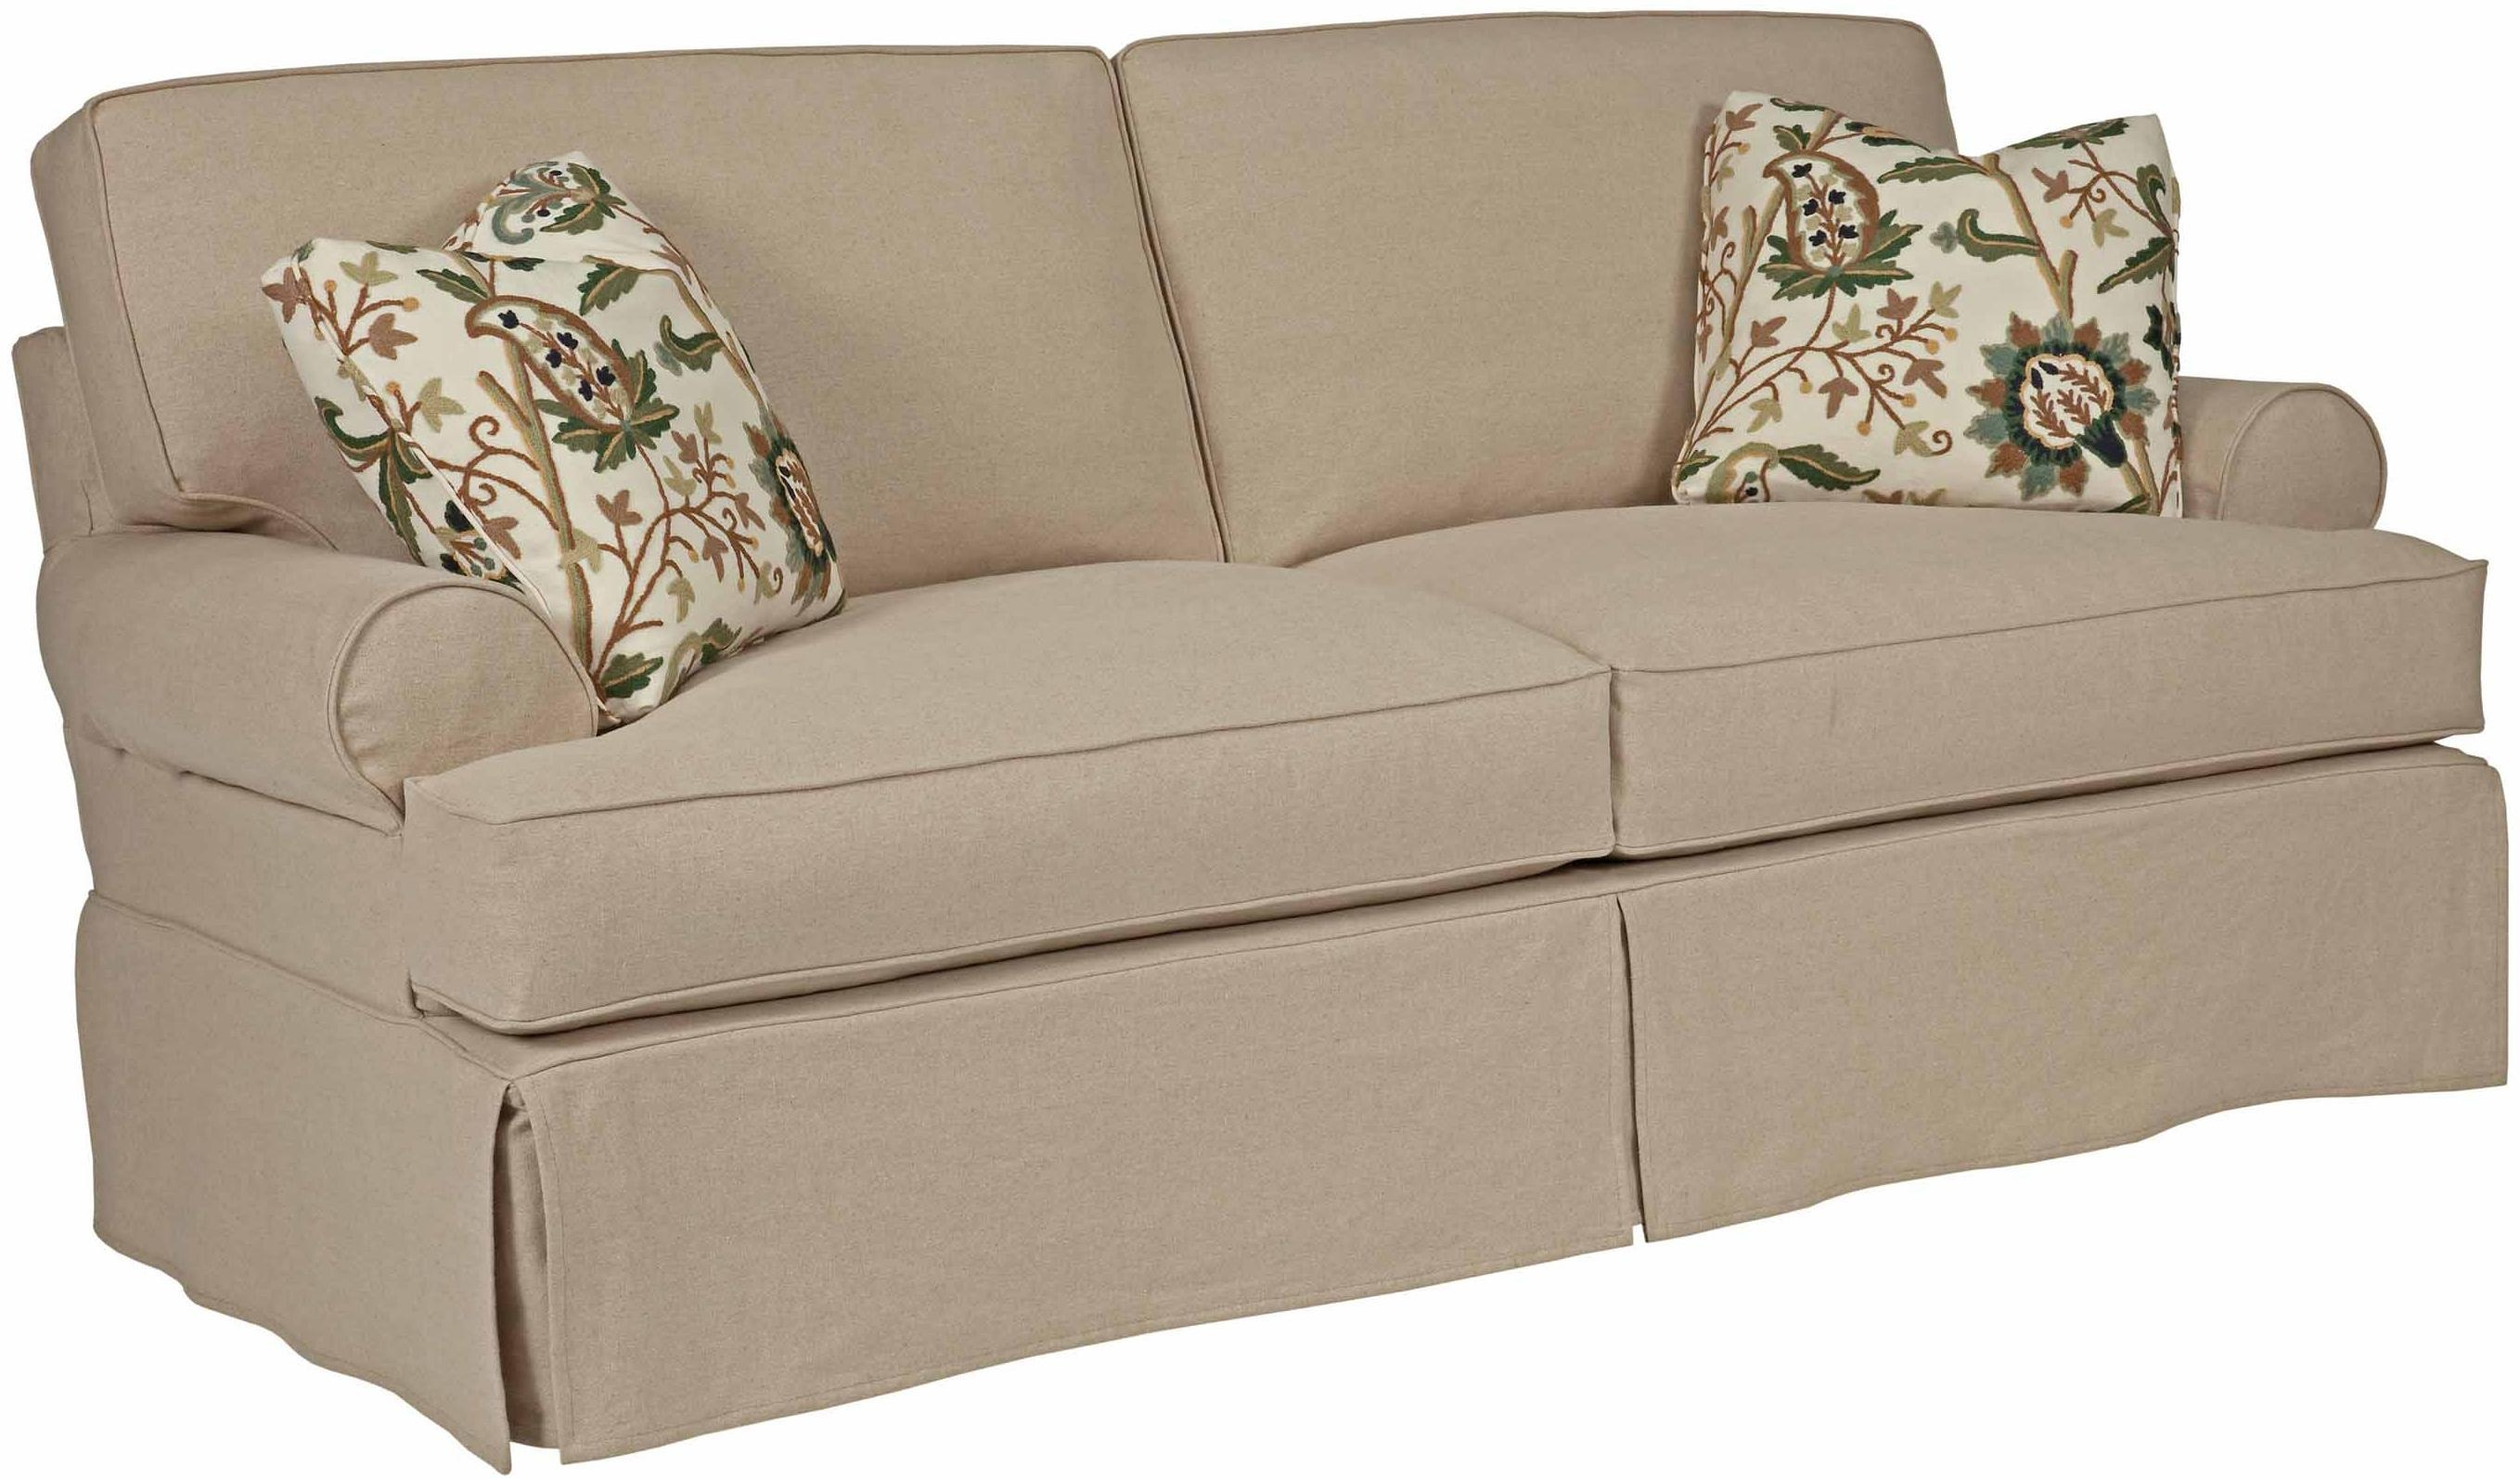 2 Piece T Cushion Sofa Slipcover – Sofas With Regard To 2 Piece Sofa Covers (Image 4 of 27)